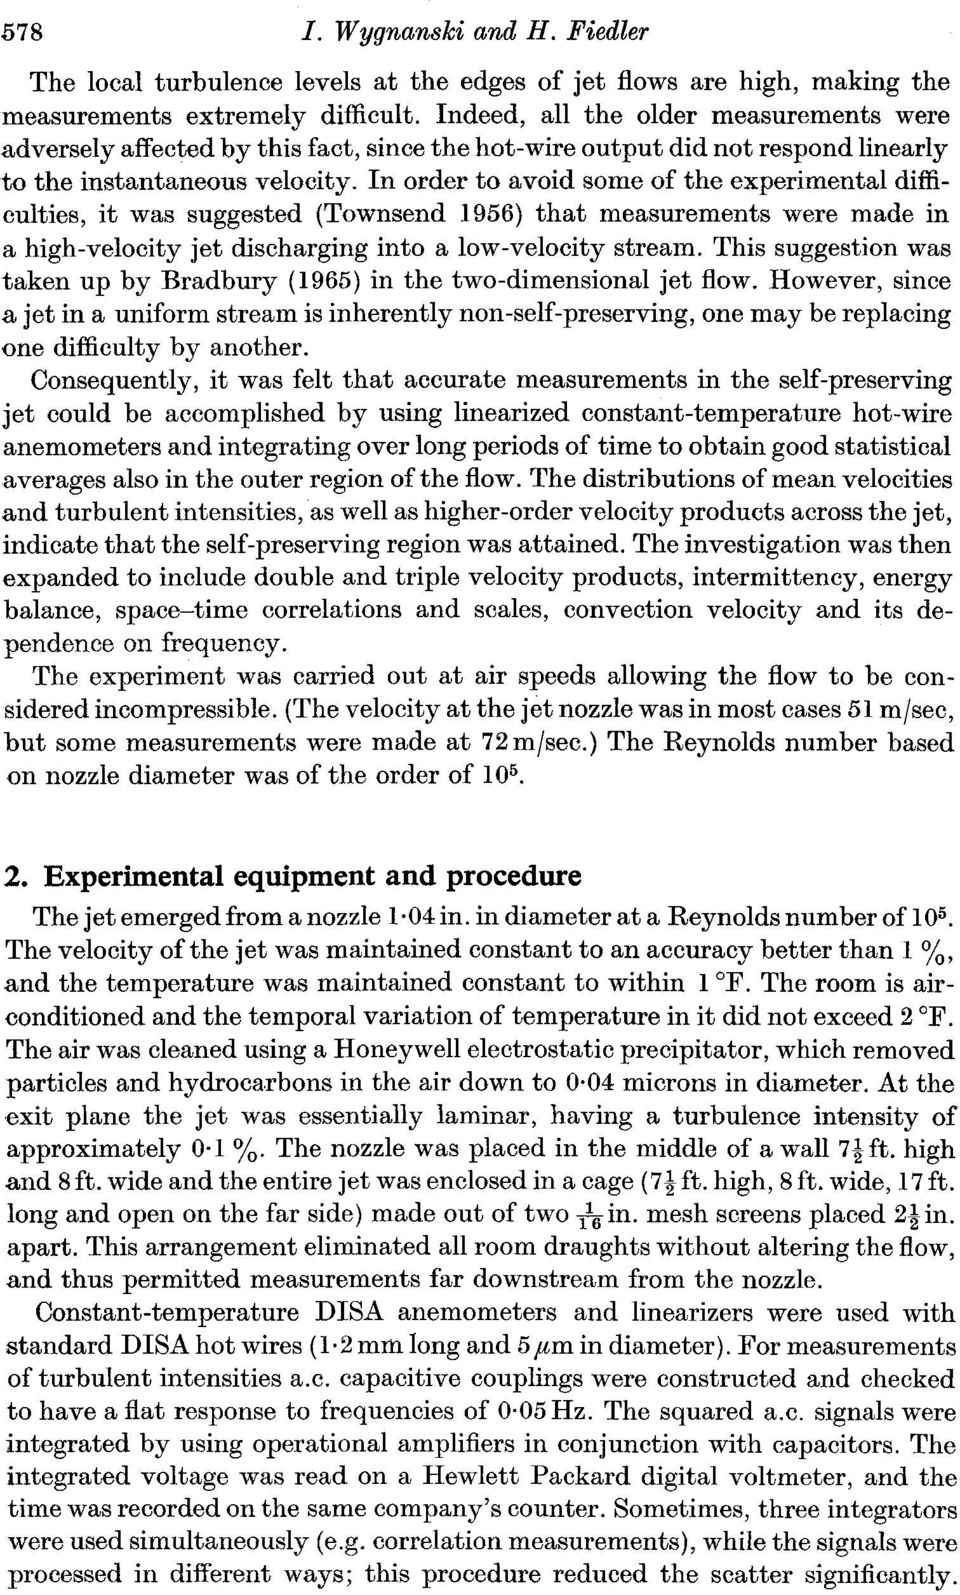 In order to avoid some of the experimental difficulties, it was suggested (Townsend 1956) that measurements were made in a high-velocity jet discharging into a low-velocity stream.